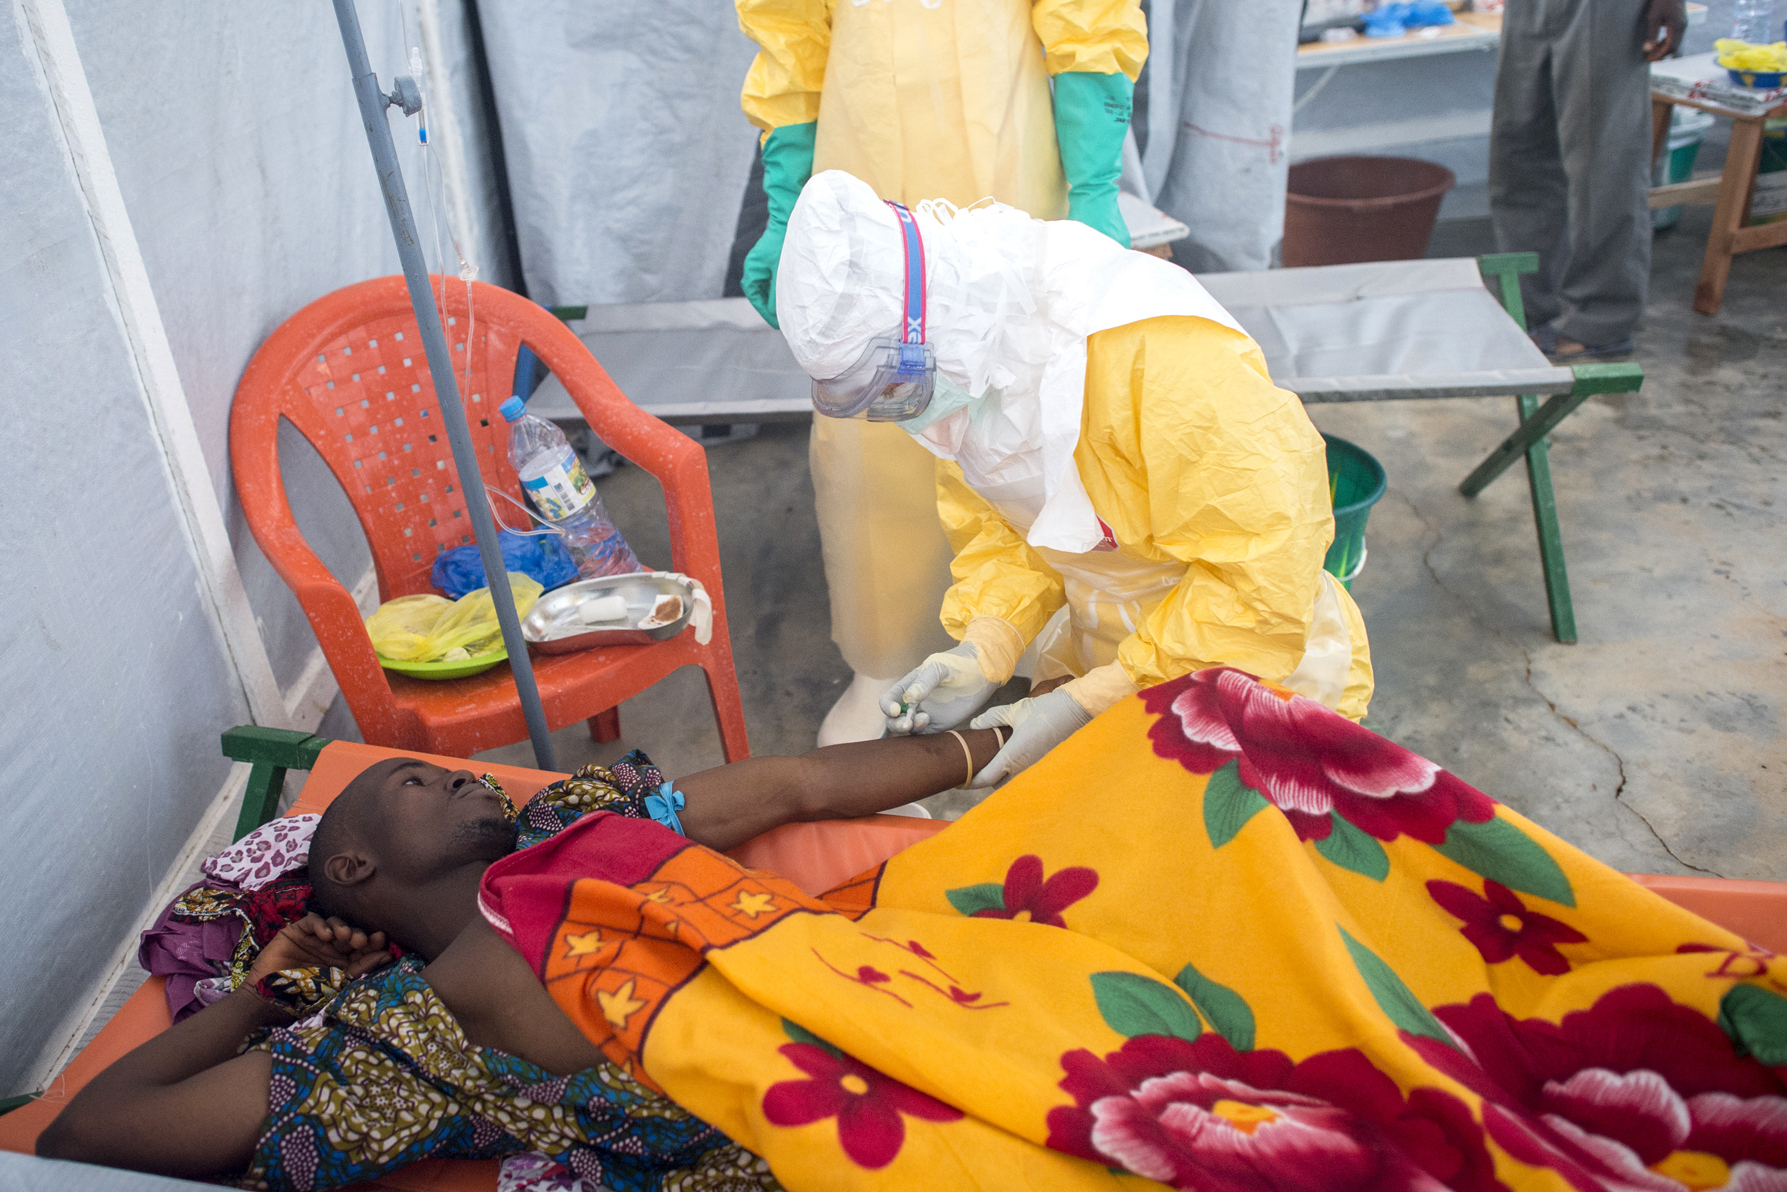 Ebola 101: The Facts Behind A Frightening Virus